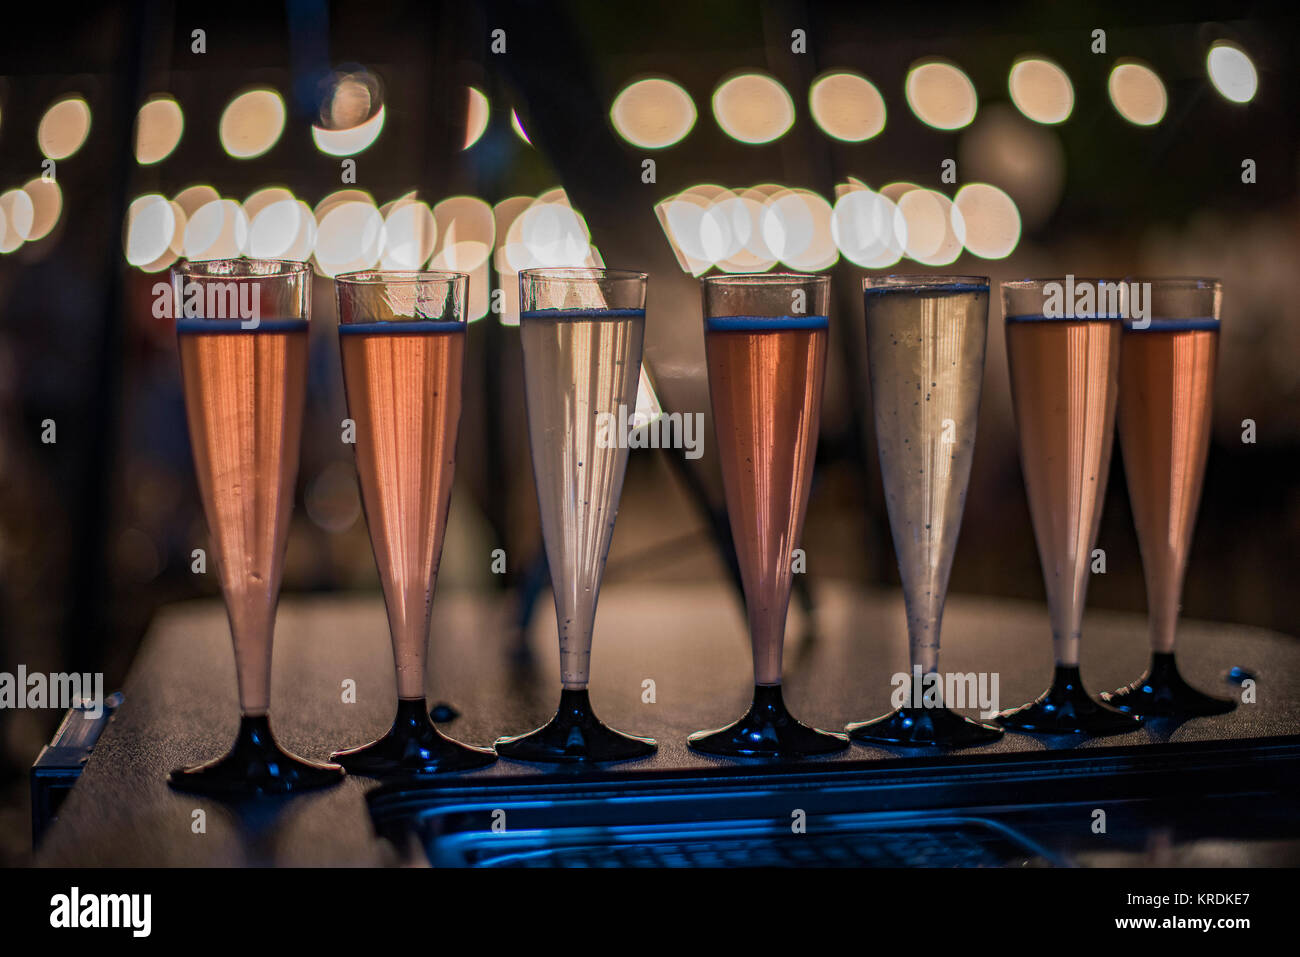 Glasses with champagne at night - Stock Image